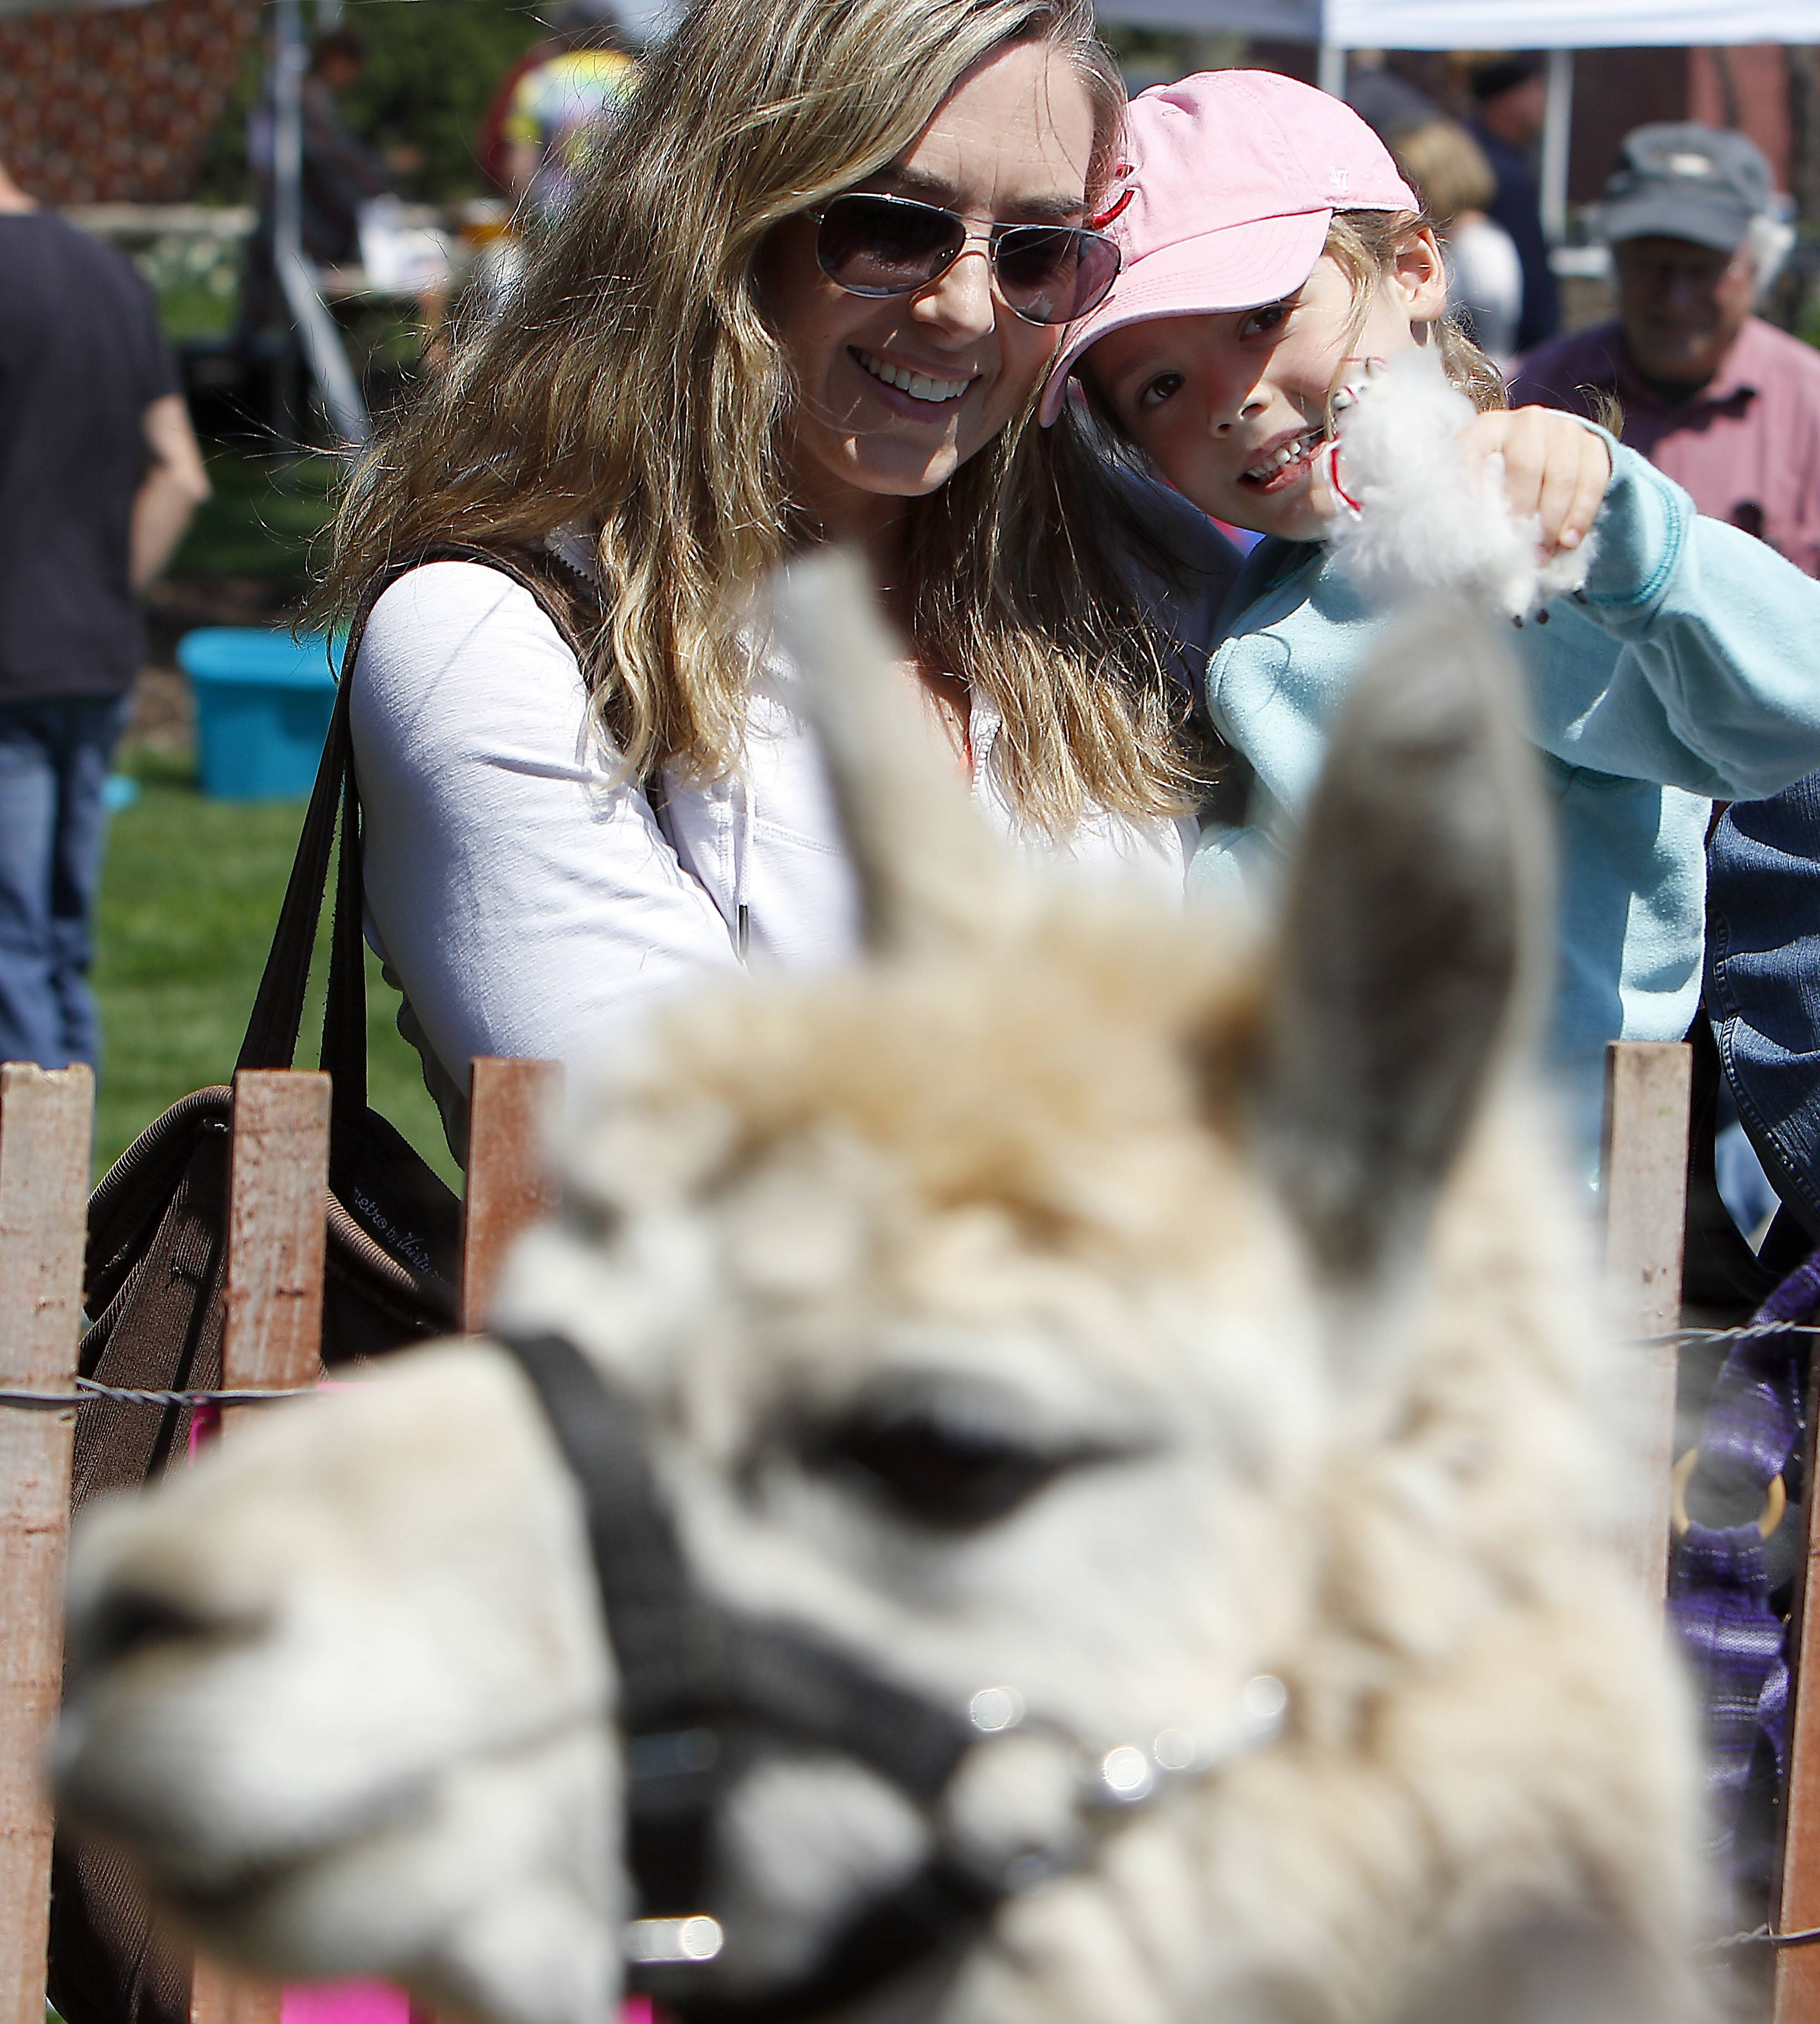 Nicole Kothe of Geneva holds her daughter Makena, 5, as they try to get the attention of an alpaca Saturday during the ninth annual Earth Day at Peck Farm Park in Geneva. Residents could purchase rain barrels, receive a bicycle safety check, learn best green practices and shred documents. The event was preceded by a 2.5-mile hike.